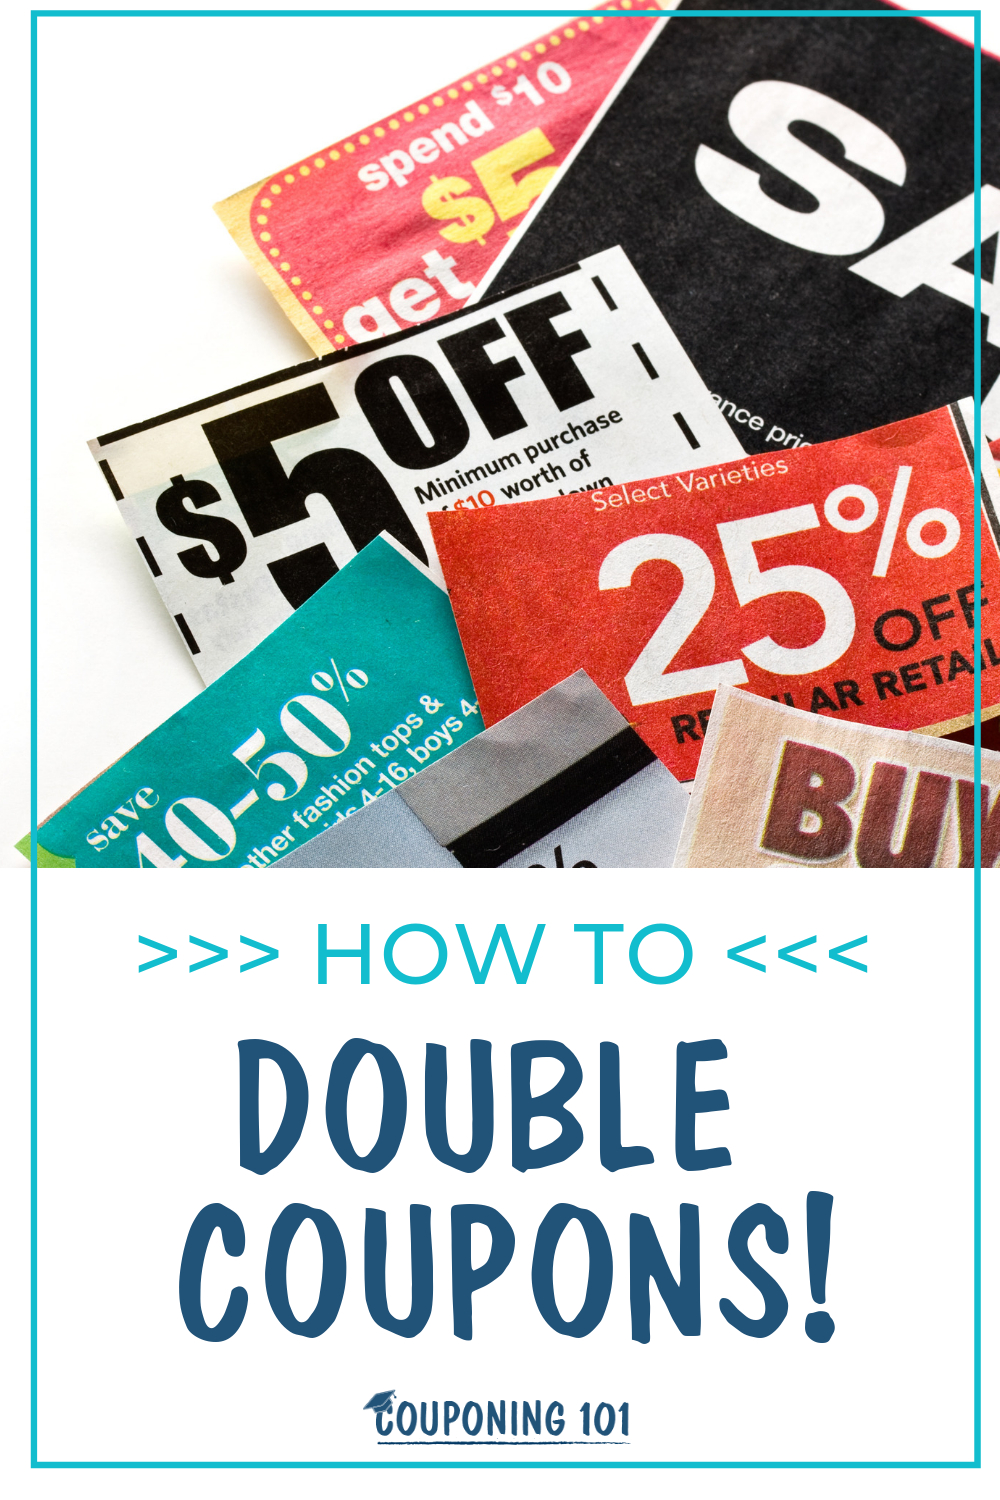 How To Double Coupons & What Does Doubling Coupons Mean - Free Printable Coupons For Panama City Beach Florida